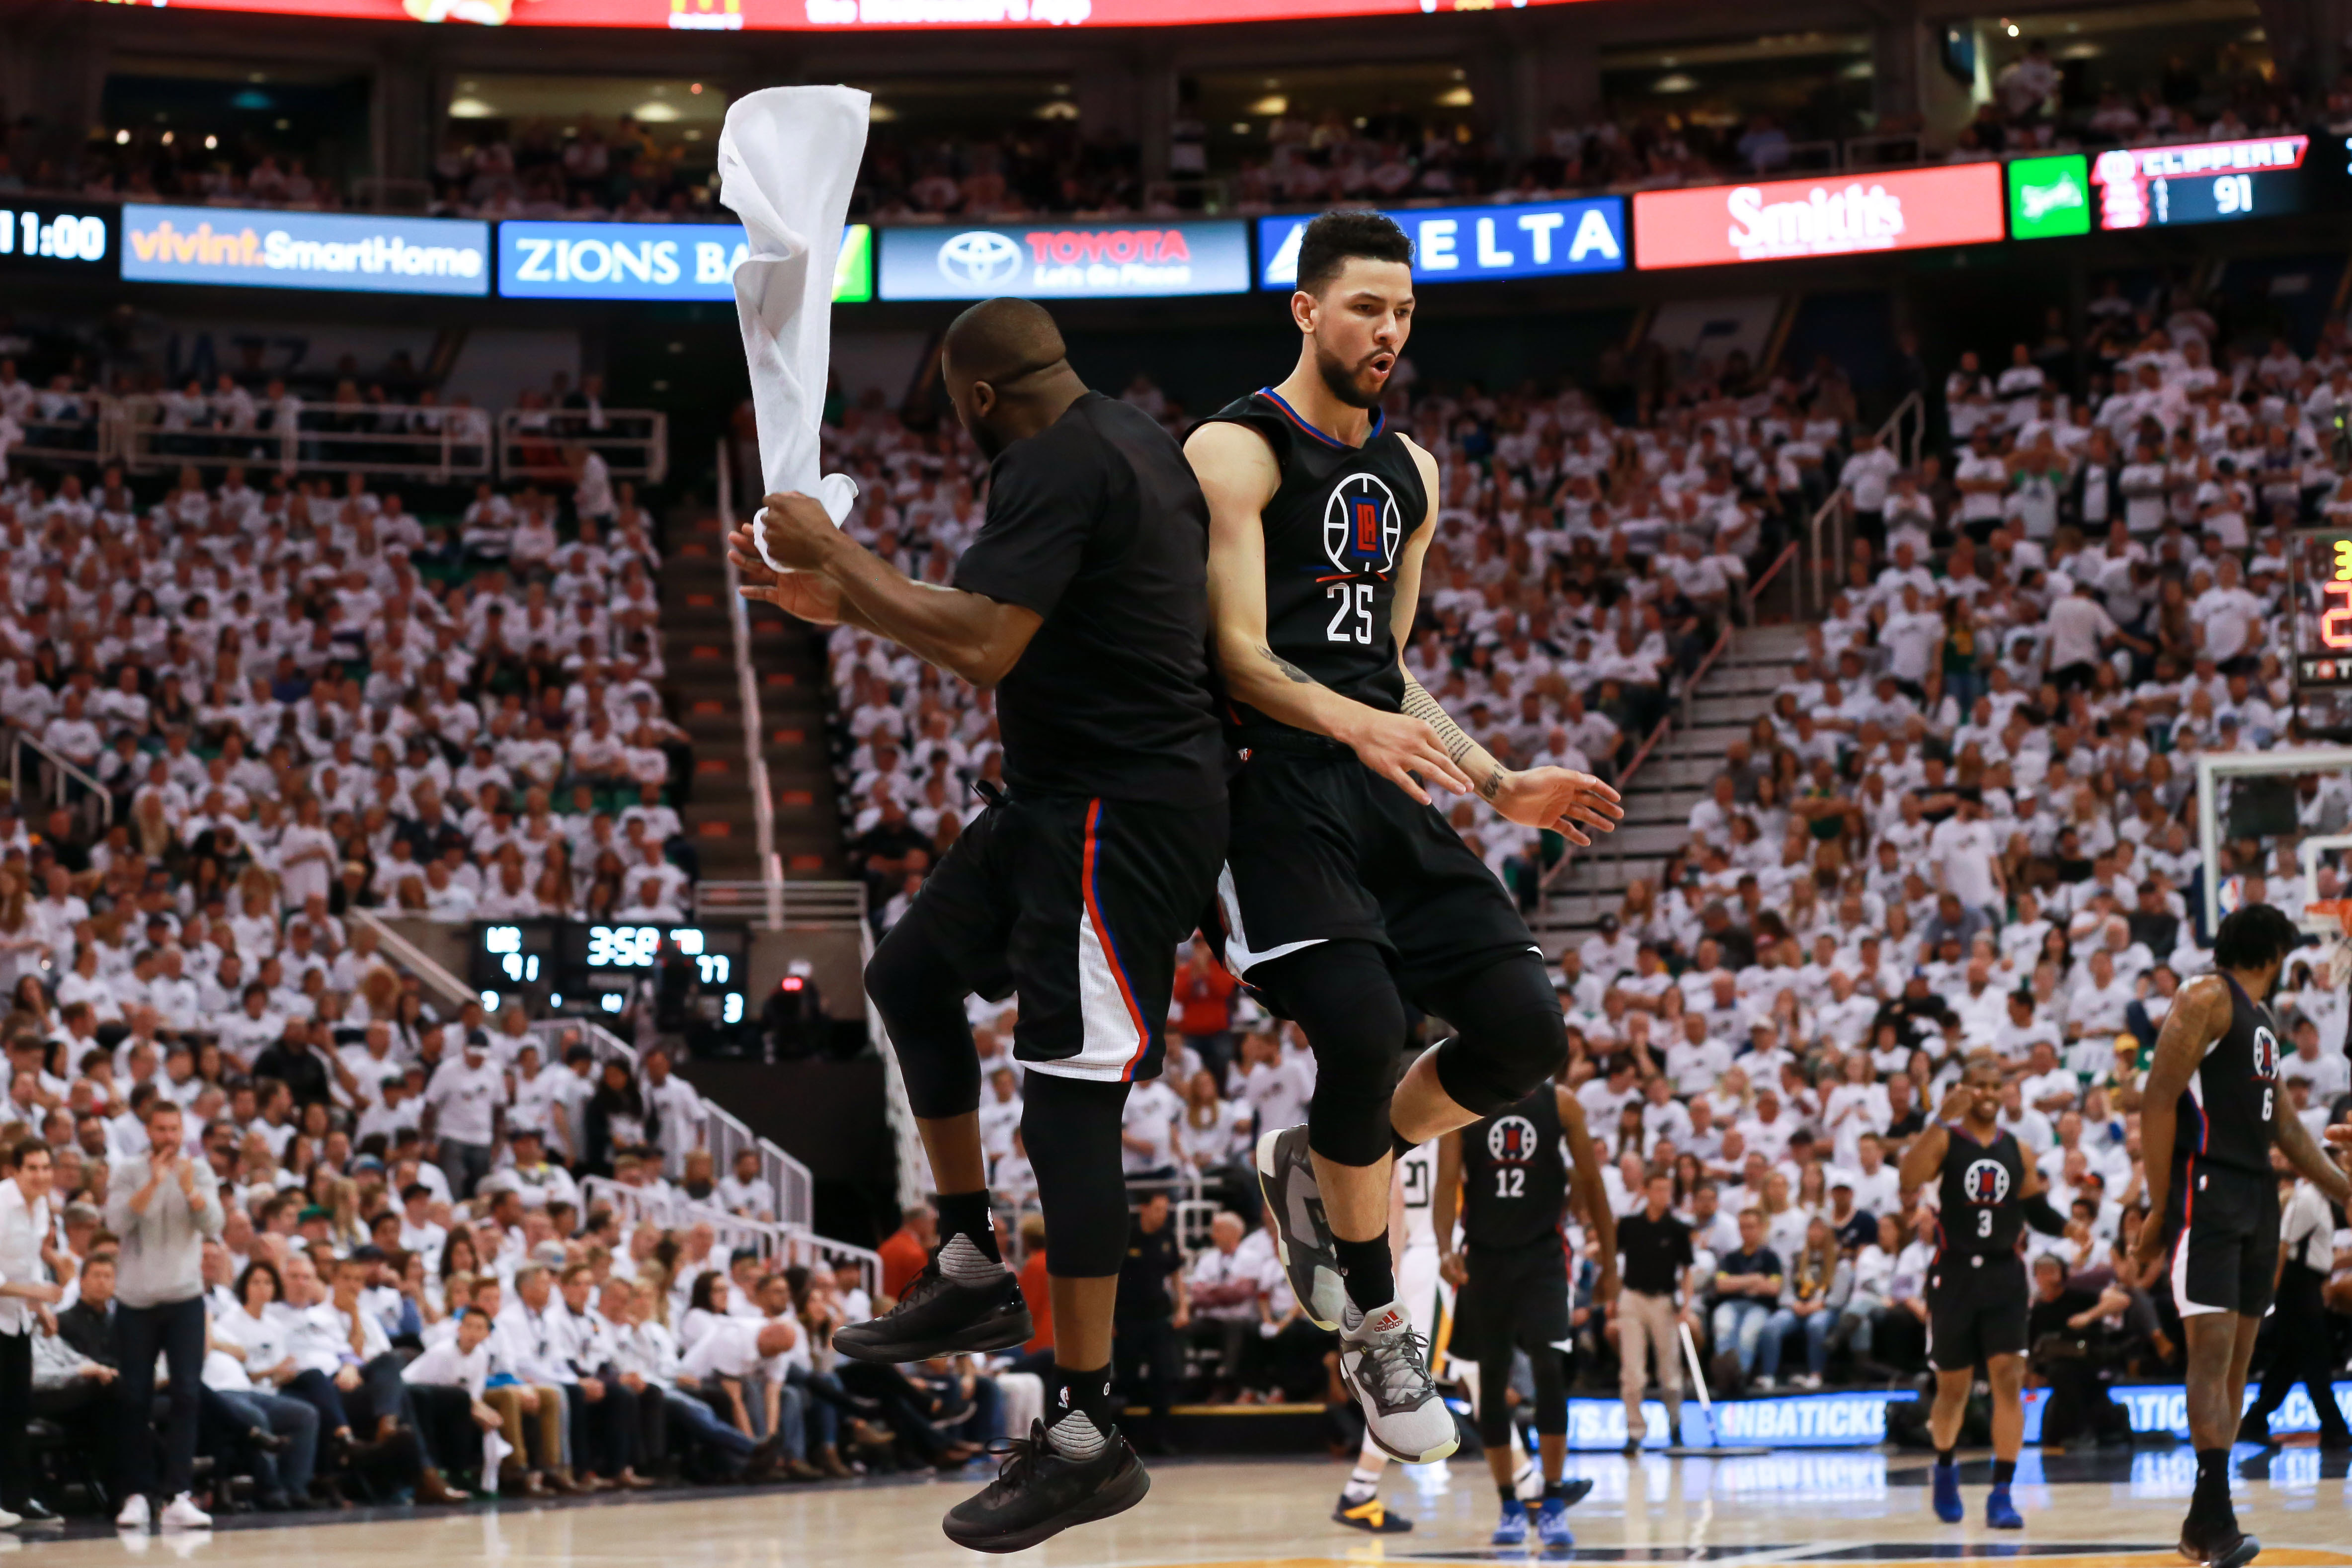 10035468-nba-playoffs-los-angeles-clippers-at-utah-jazz